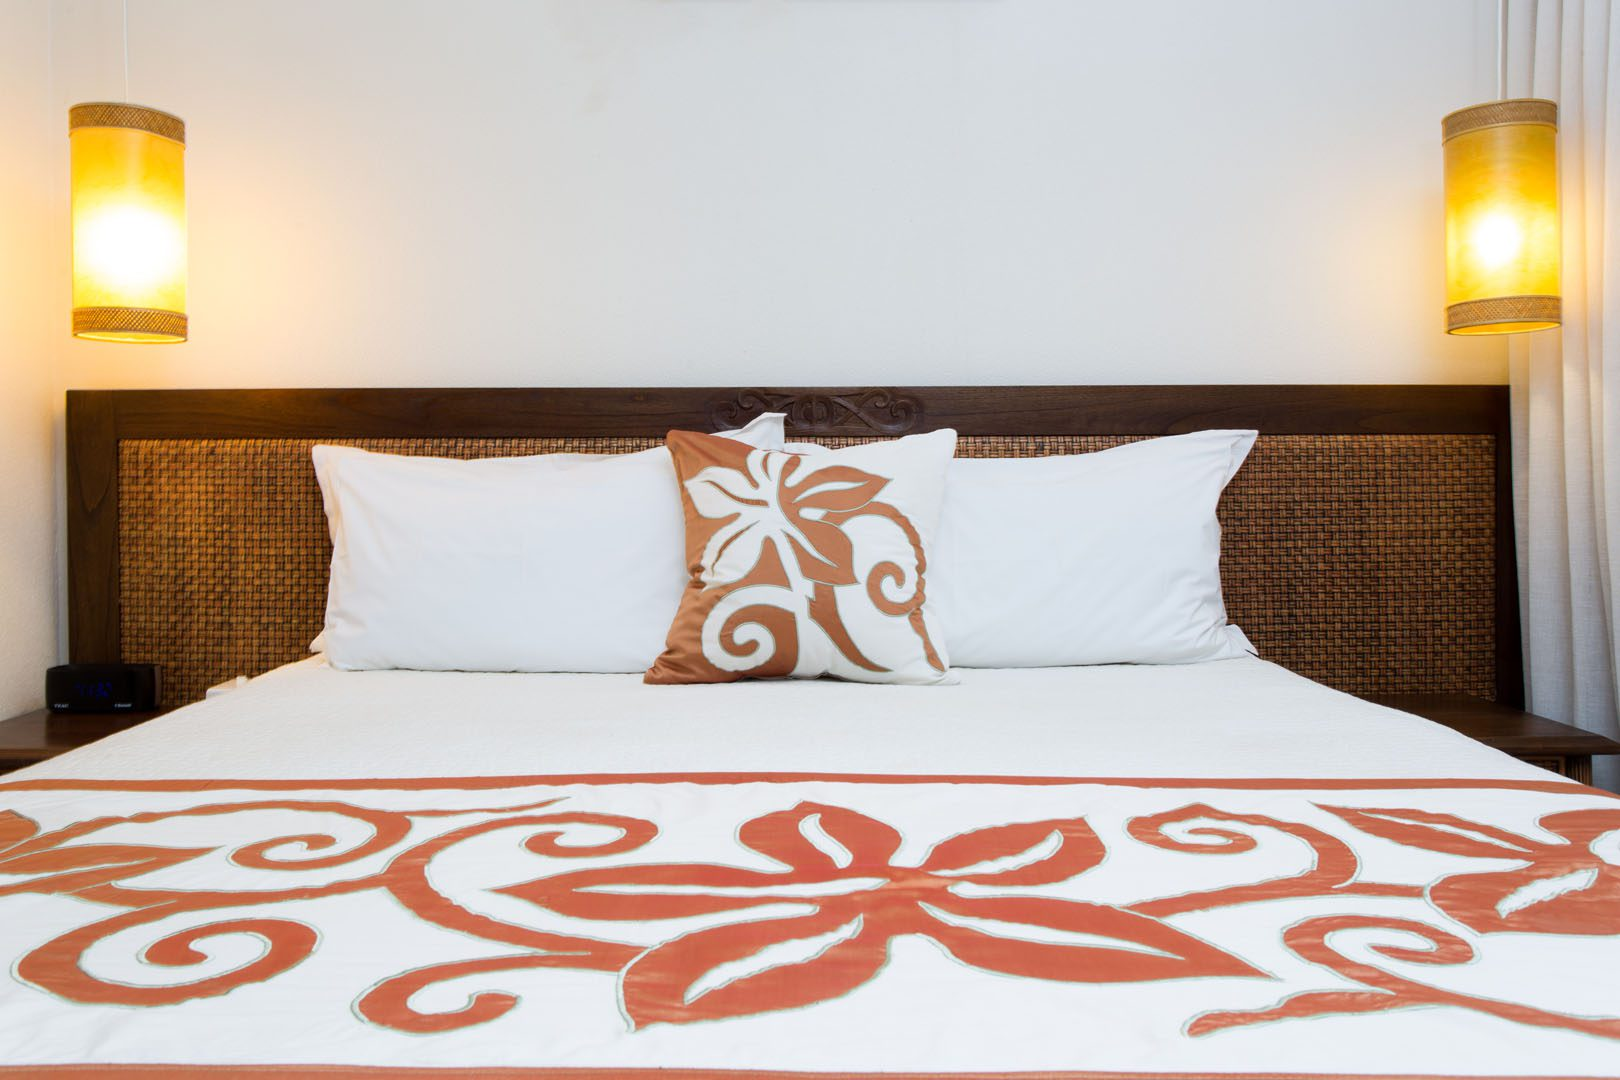 Image of Polynesian Flare between the king size bed to enhance lighting in the room